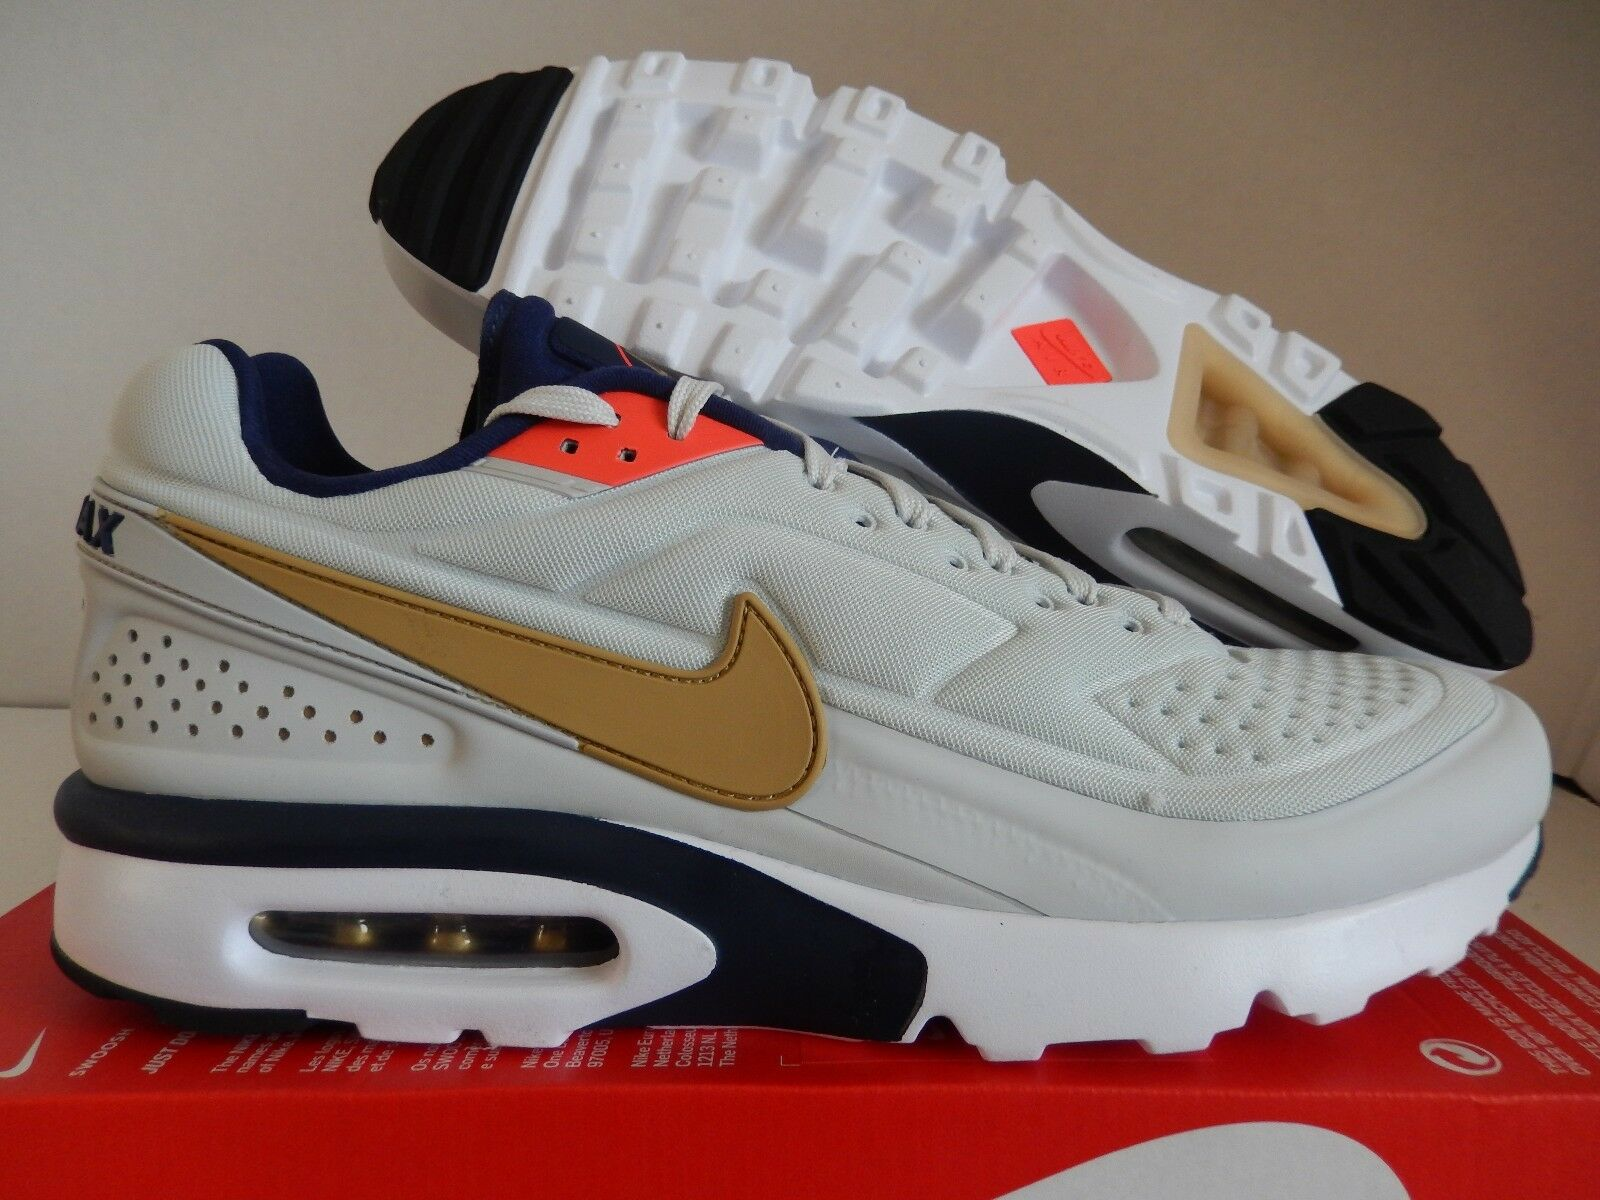 NIKE AIR MAX BW ULTRA SE PURE PLATINUM-GOLD